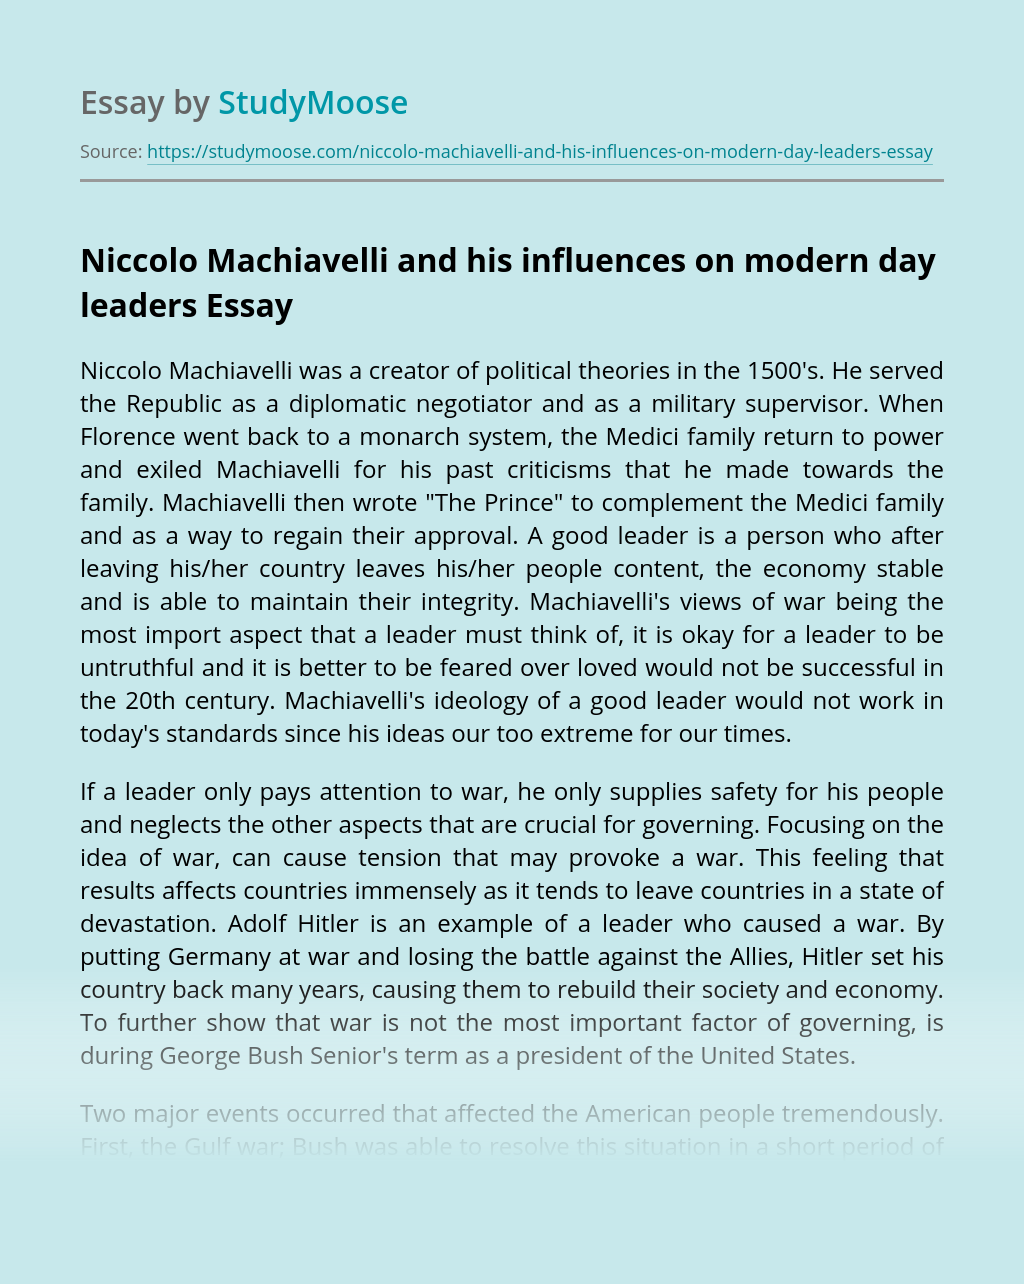 Niccolo Machiavelli and his influences on modern day leaders